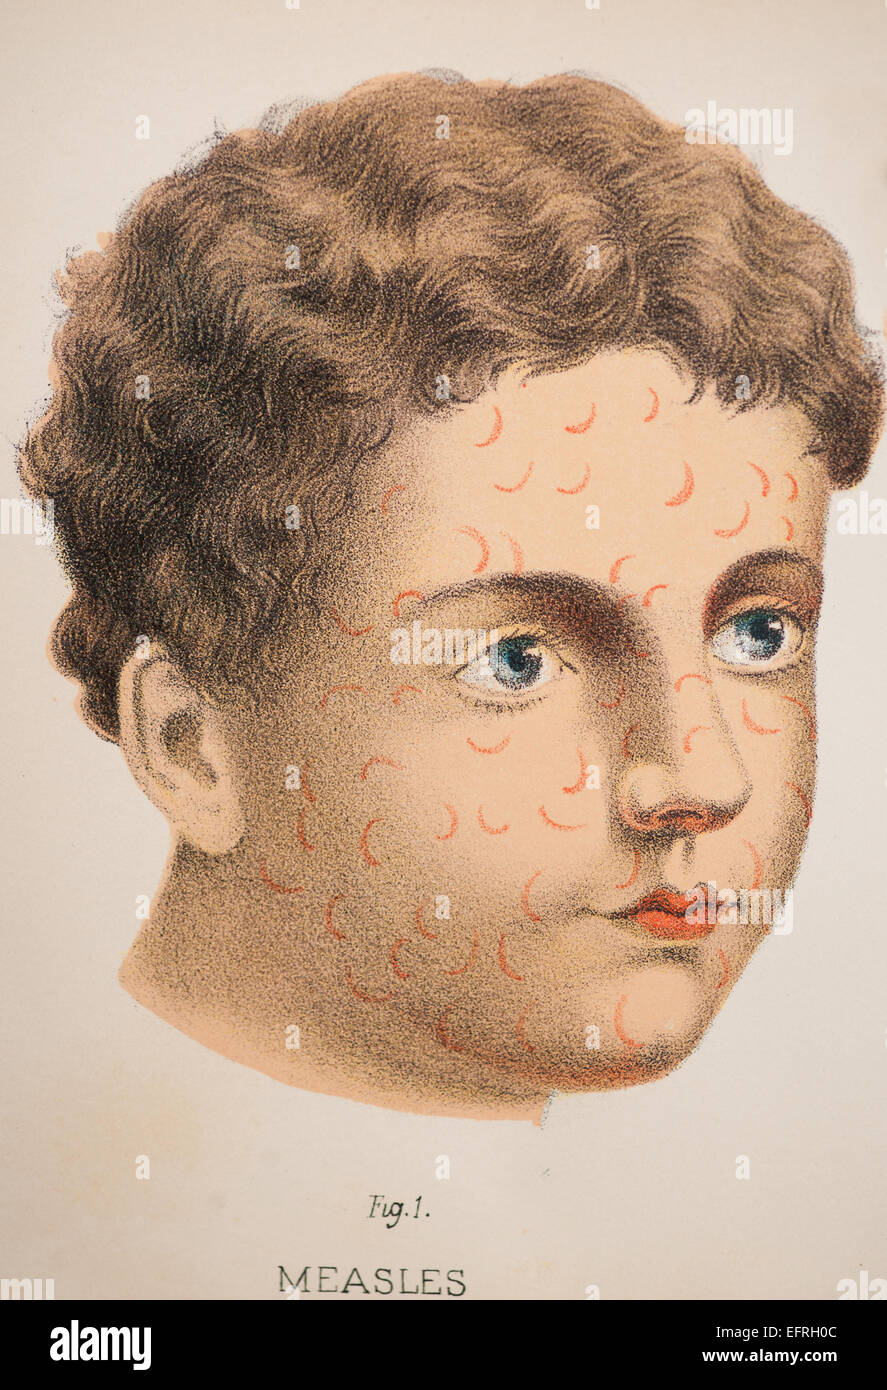 Child with measles, circa 1912. - Stock Image